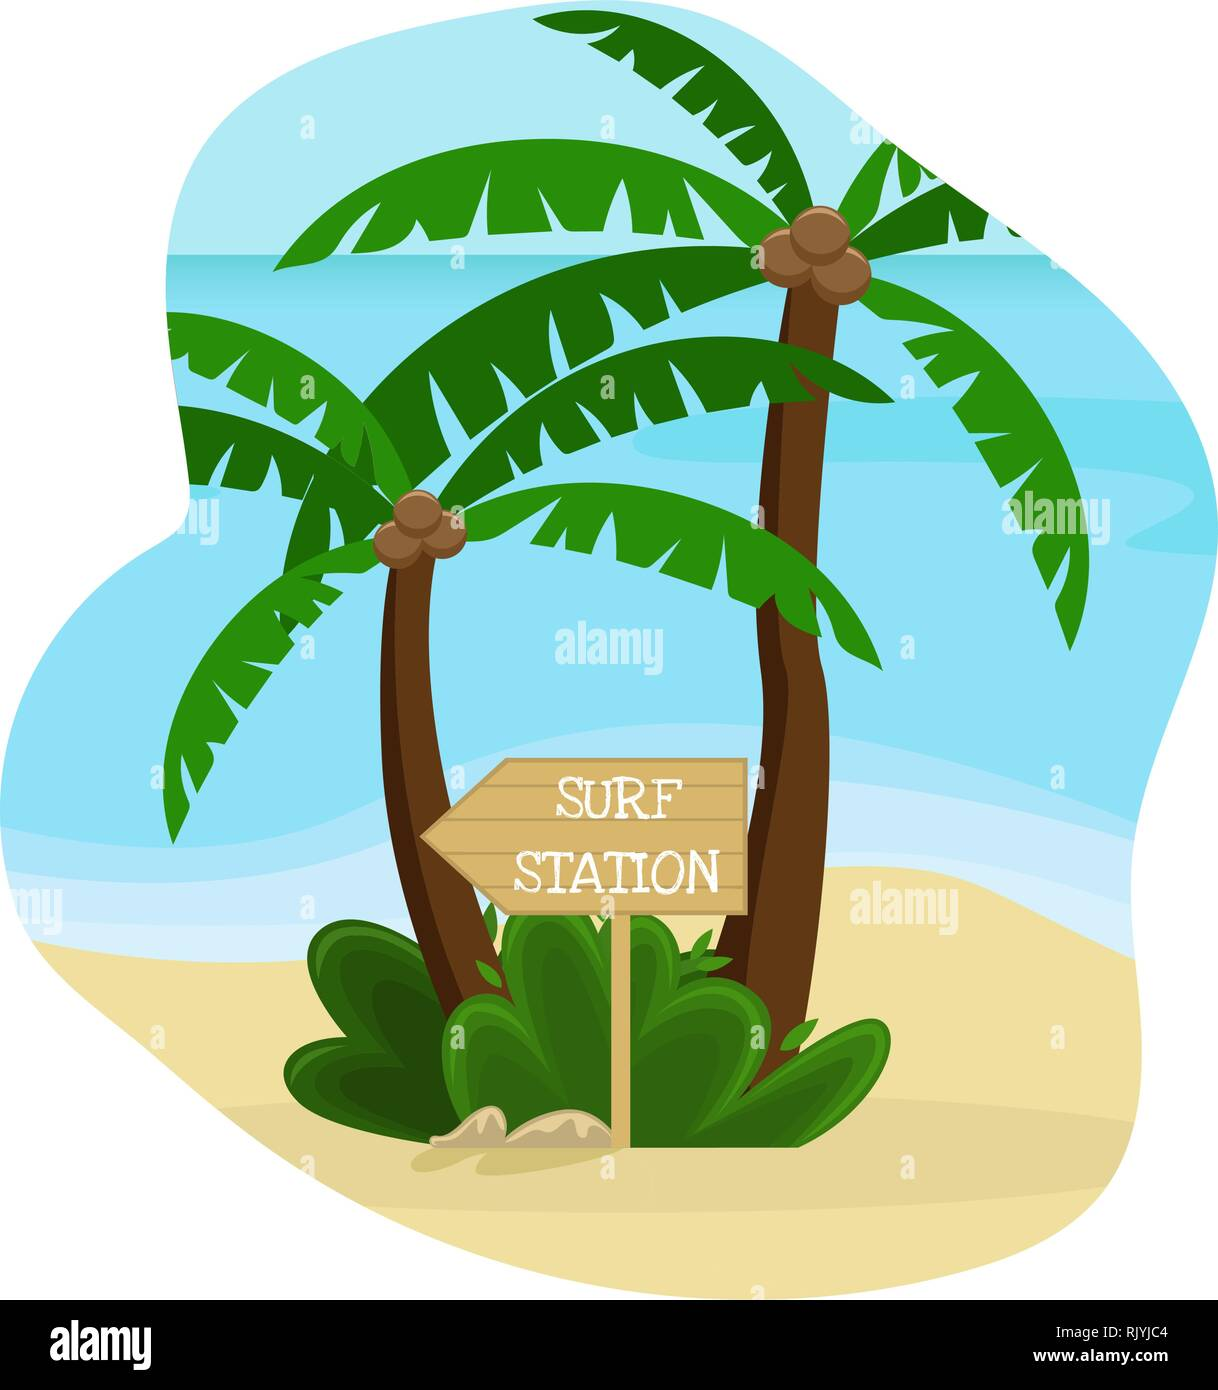 Beach landscape. Palm trees with a wooden pointer to the surf station. Flat vector illustration. Stock Vector